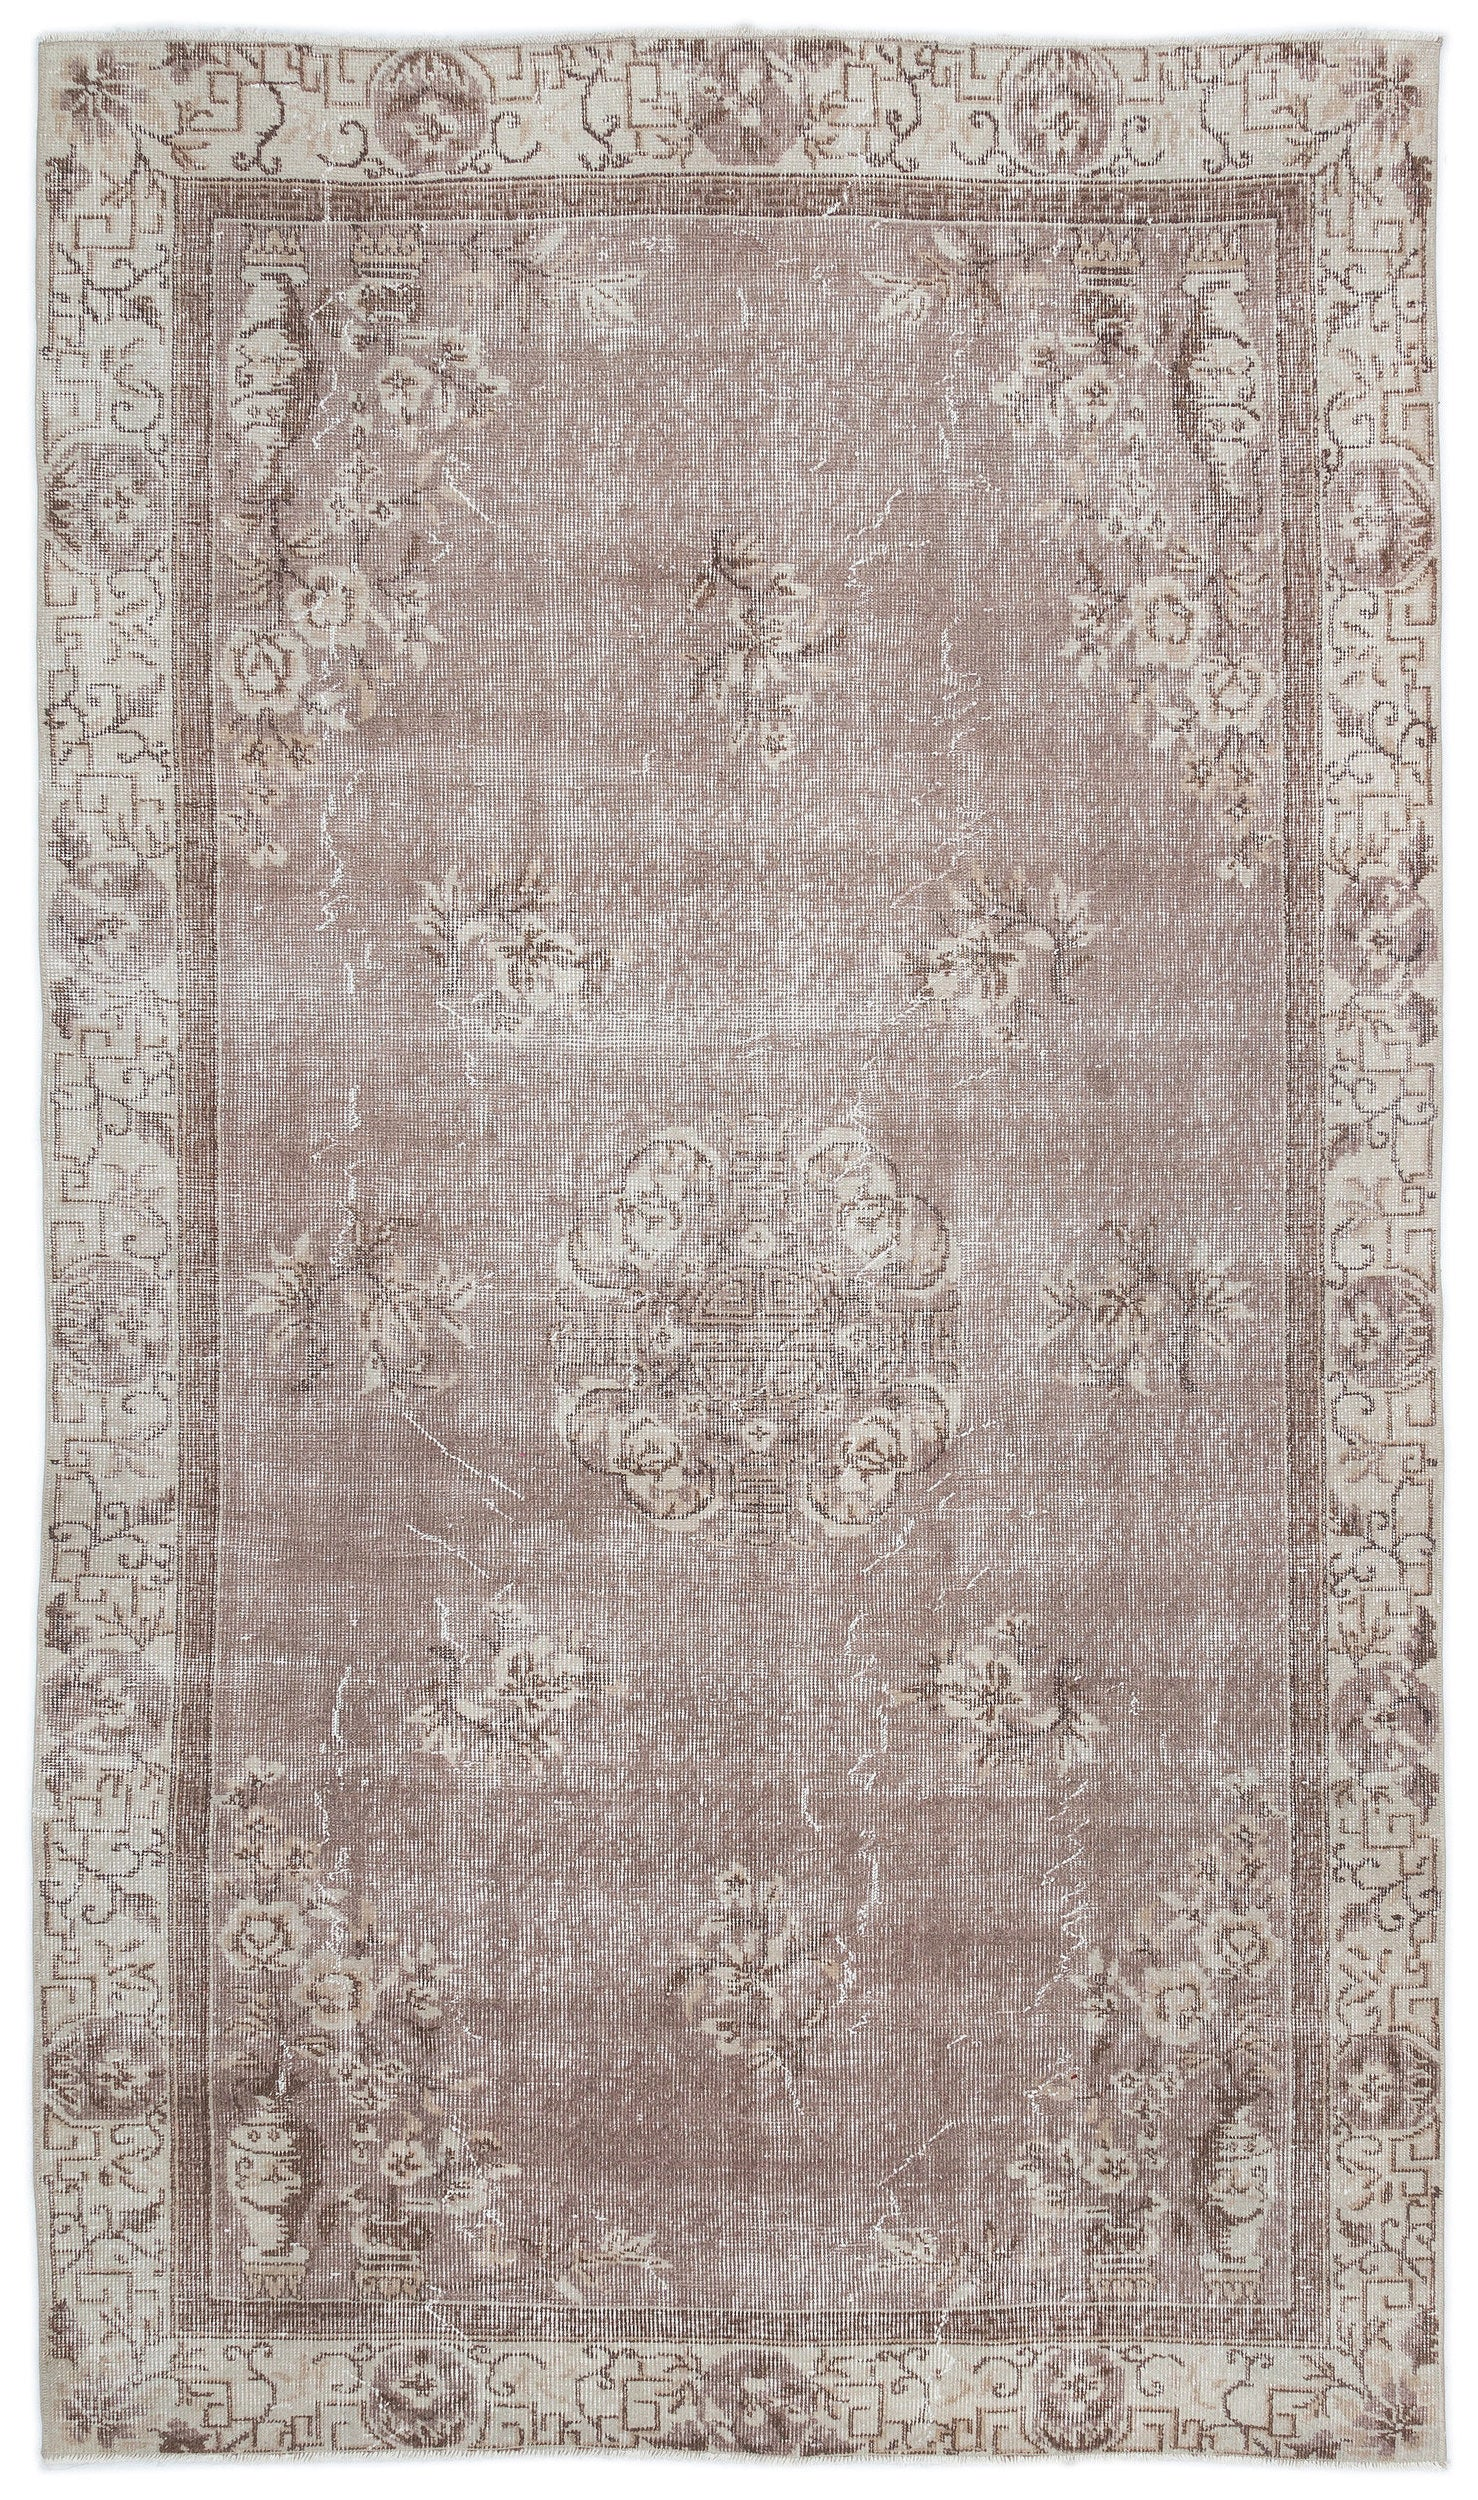 Retro Over Dyed Vintage Rug 5'2'' x 8'9'' ft 158 x 267 cm